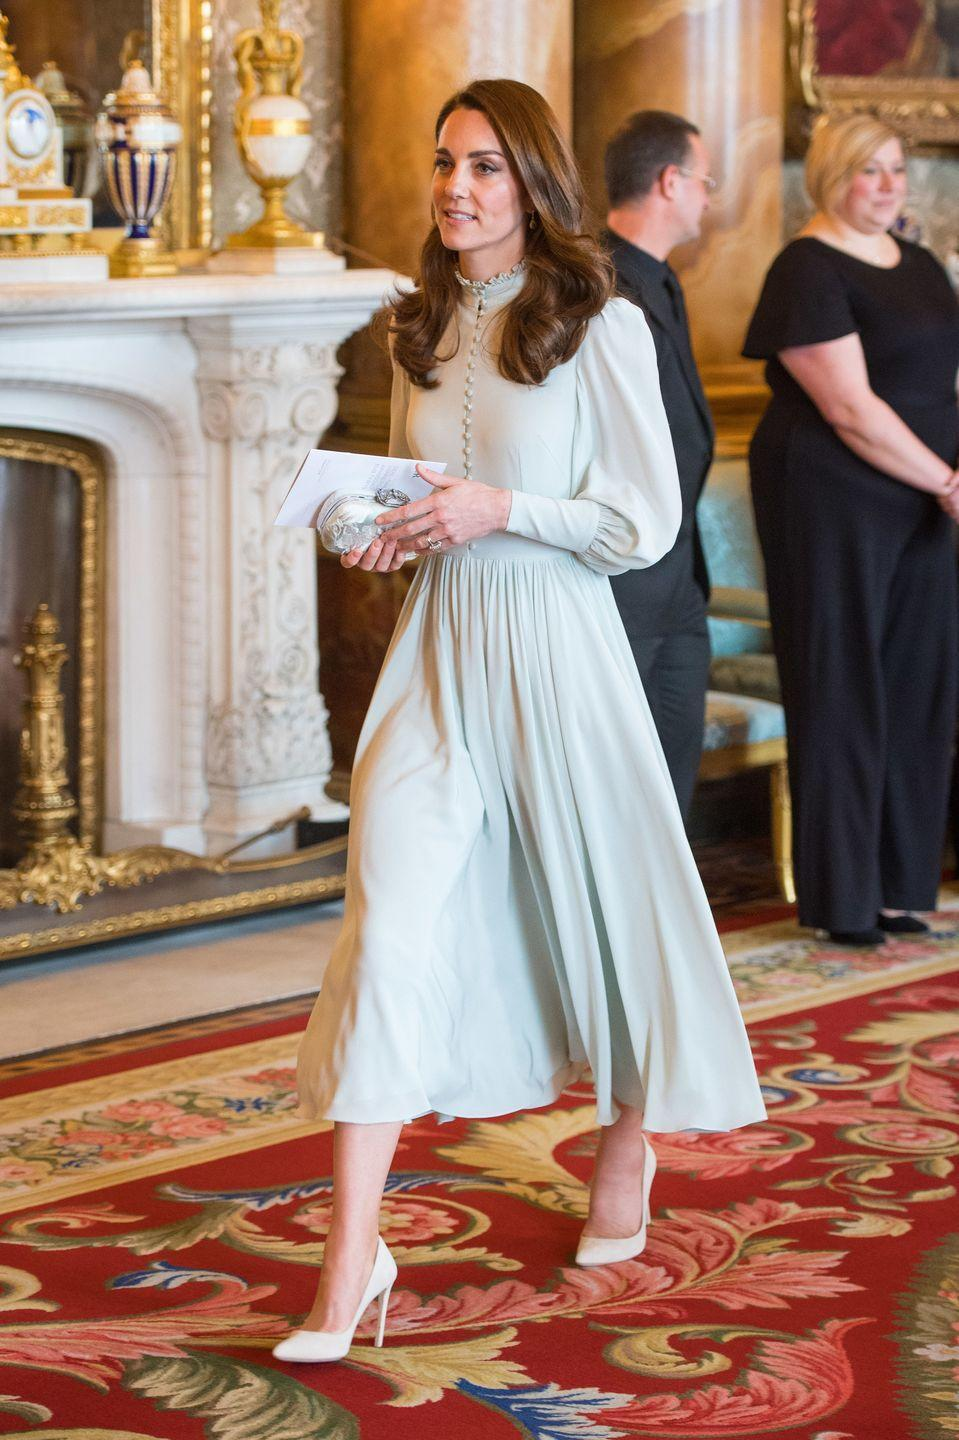 "<p>The Duchess wore <a href=""https://www.townandcountrymag.com/style/fashion-trends/a26630013/kate-middleton-blue-dress-princes-charles-investiture-anniversary/"" rel=""nofollow noopener"" target=""_blank"" data-ylk=""slk:a pale blue dress"" class=""link rapid-noclick-resp"">a pale blue dress</a> with nude heels and a small clutch to a celebration at Buckingham Palace in honor of the <a href=""https://www.townandcountrymag.com/society/tradition/a26576659/prince-charles-prince-wales-investiture-1969-true-story/"" rel=""nofollow noopener"" target=""_blank"" data-ylk=""slk:50th anniversary of Prince Charles's investiture"" class=""link rapid-noclick-resp"">50th anniversary of Prince Charles's investiture</a> as the Prince of Wales.</p>"